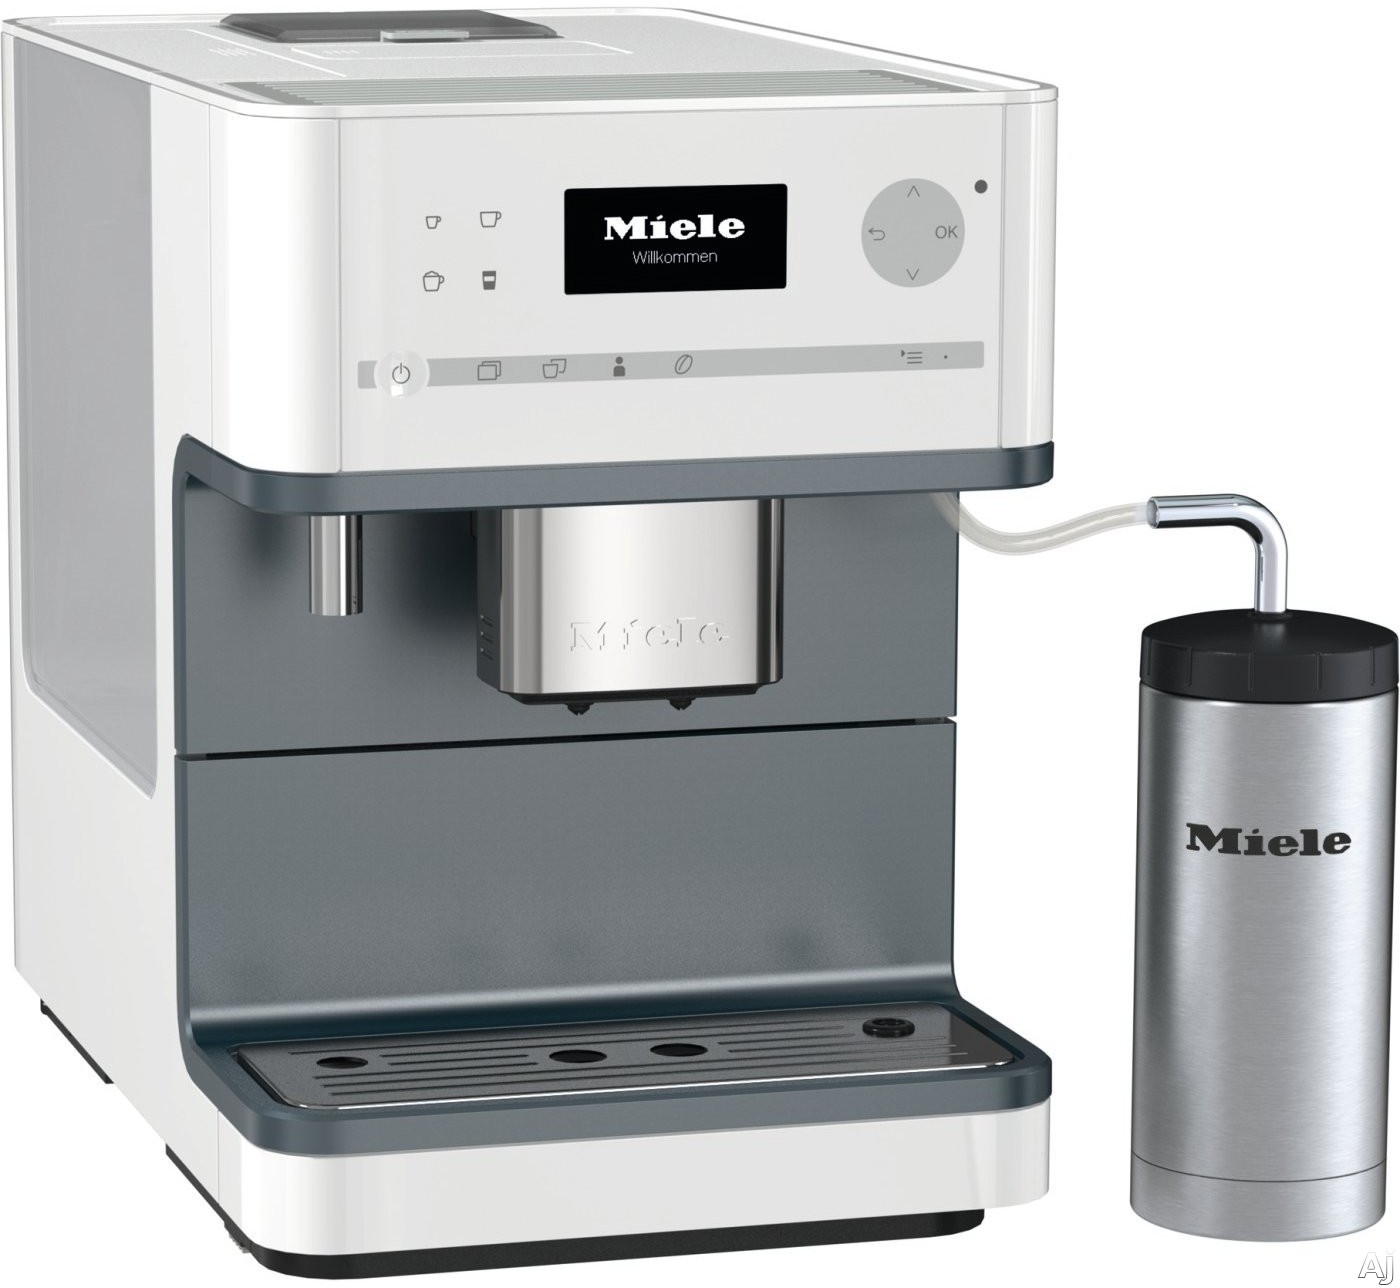 Miele CM6350 Countertop Coffee Machine with AromaticSystem, ComfortClean, Easily removable Brew Unit, System Lock, User Profiles and Individual Settings